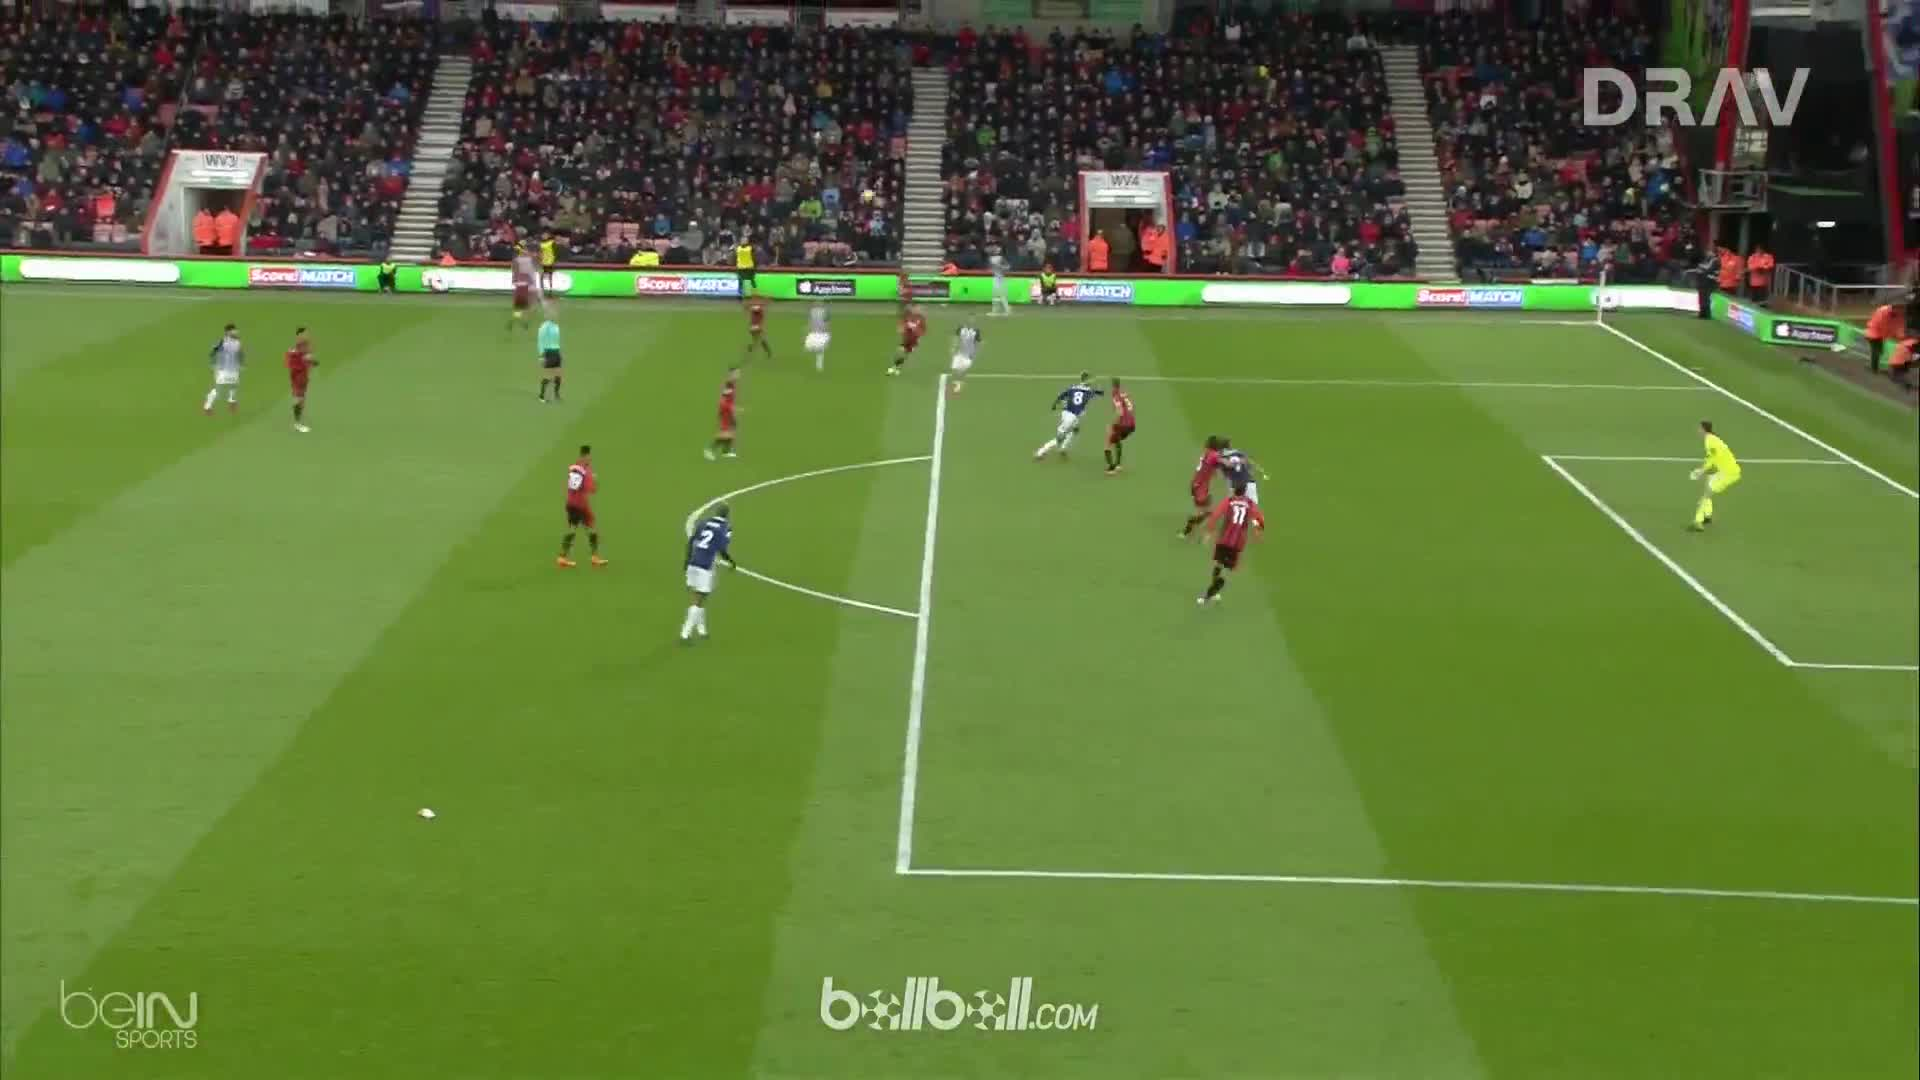 Bournemouth 2 - 1 West Brom